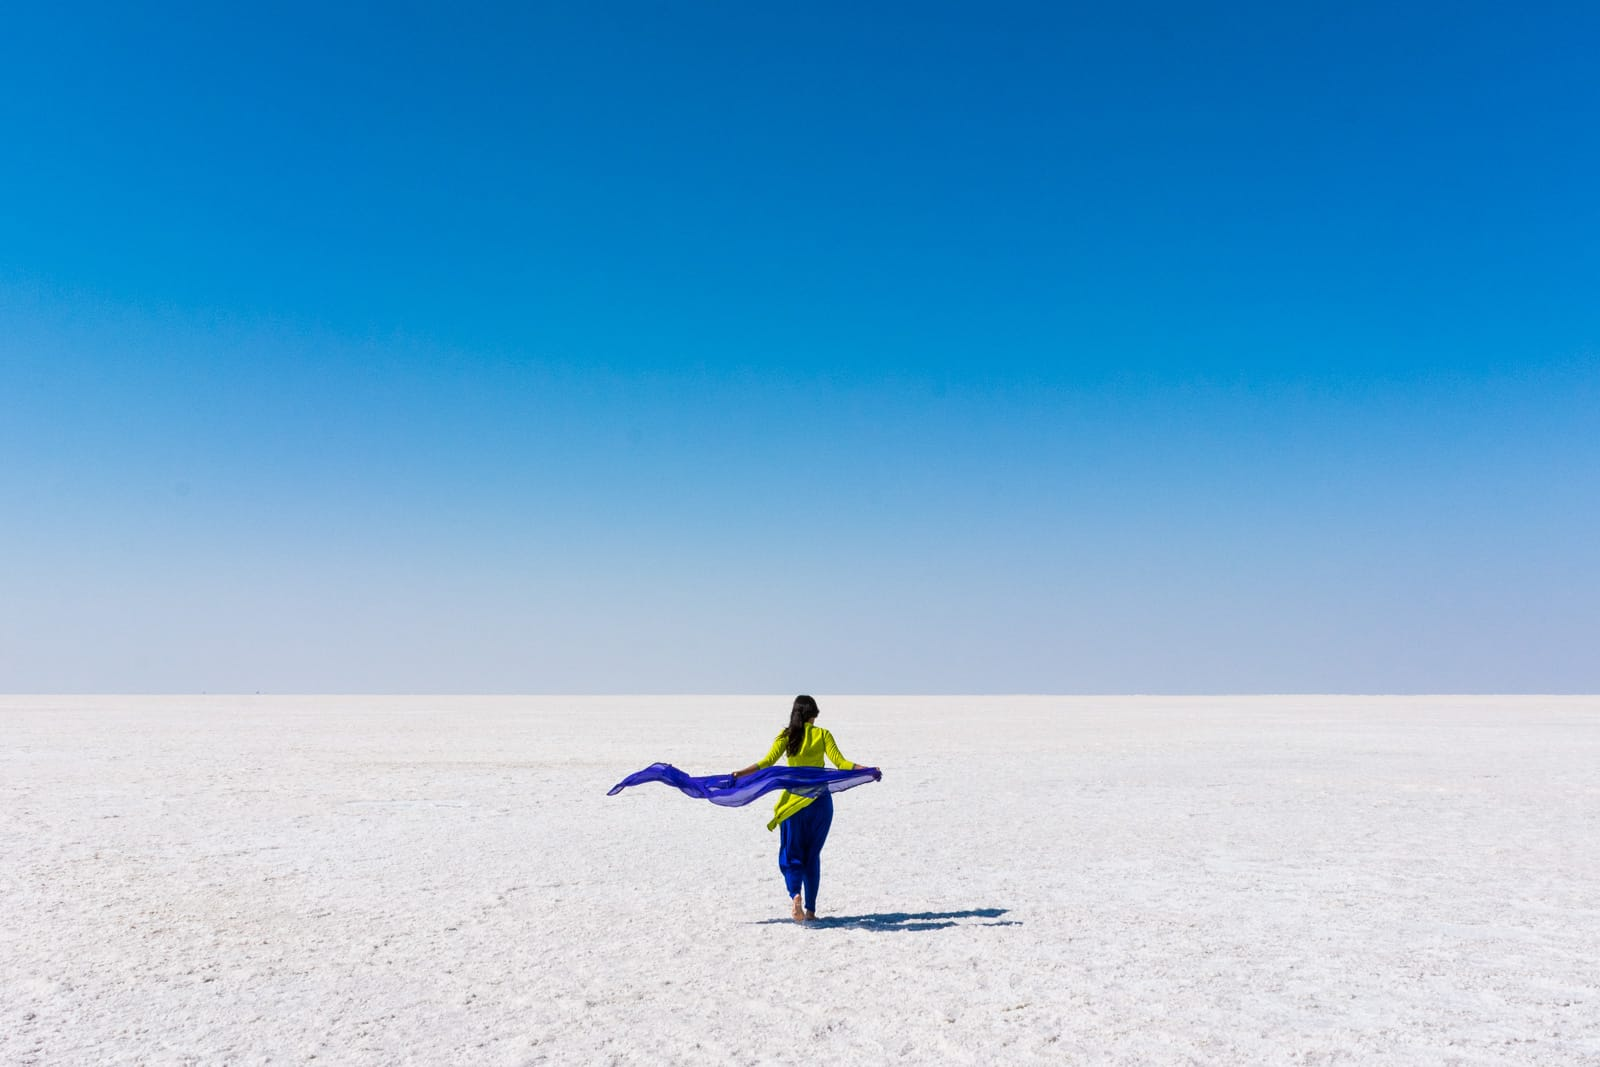 Reverse culture shock from long-term travel - Alex walking in the white desert known as the Great Rann of Kutch in Gujarat, India - Lost With Purpose travel blog